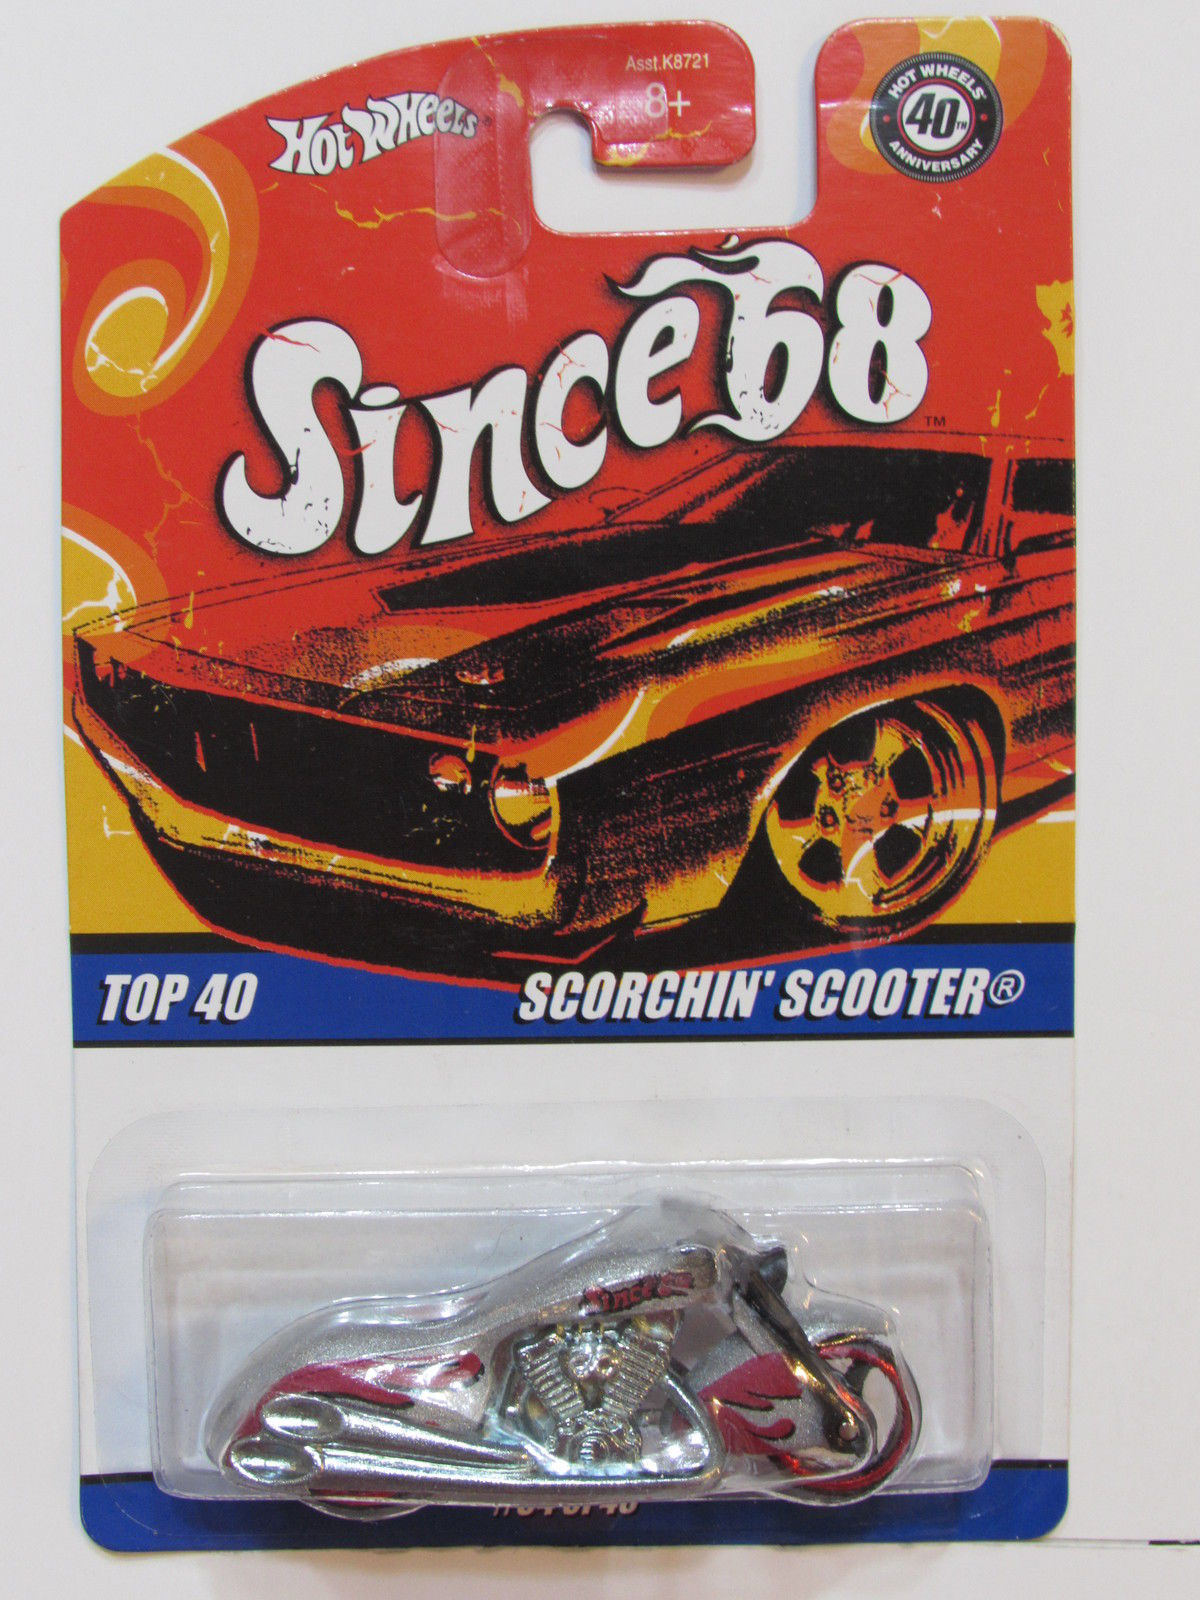 HOT WHEELS SINCE 68 SCORCHIN' SCOOTER - TOP 40